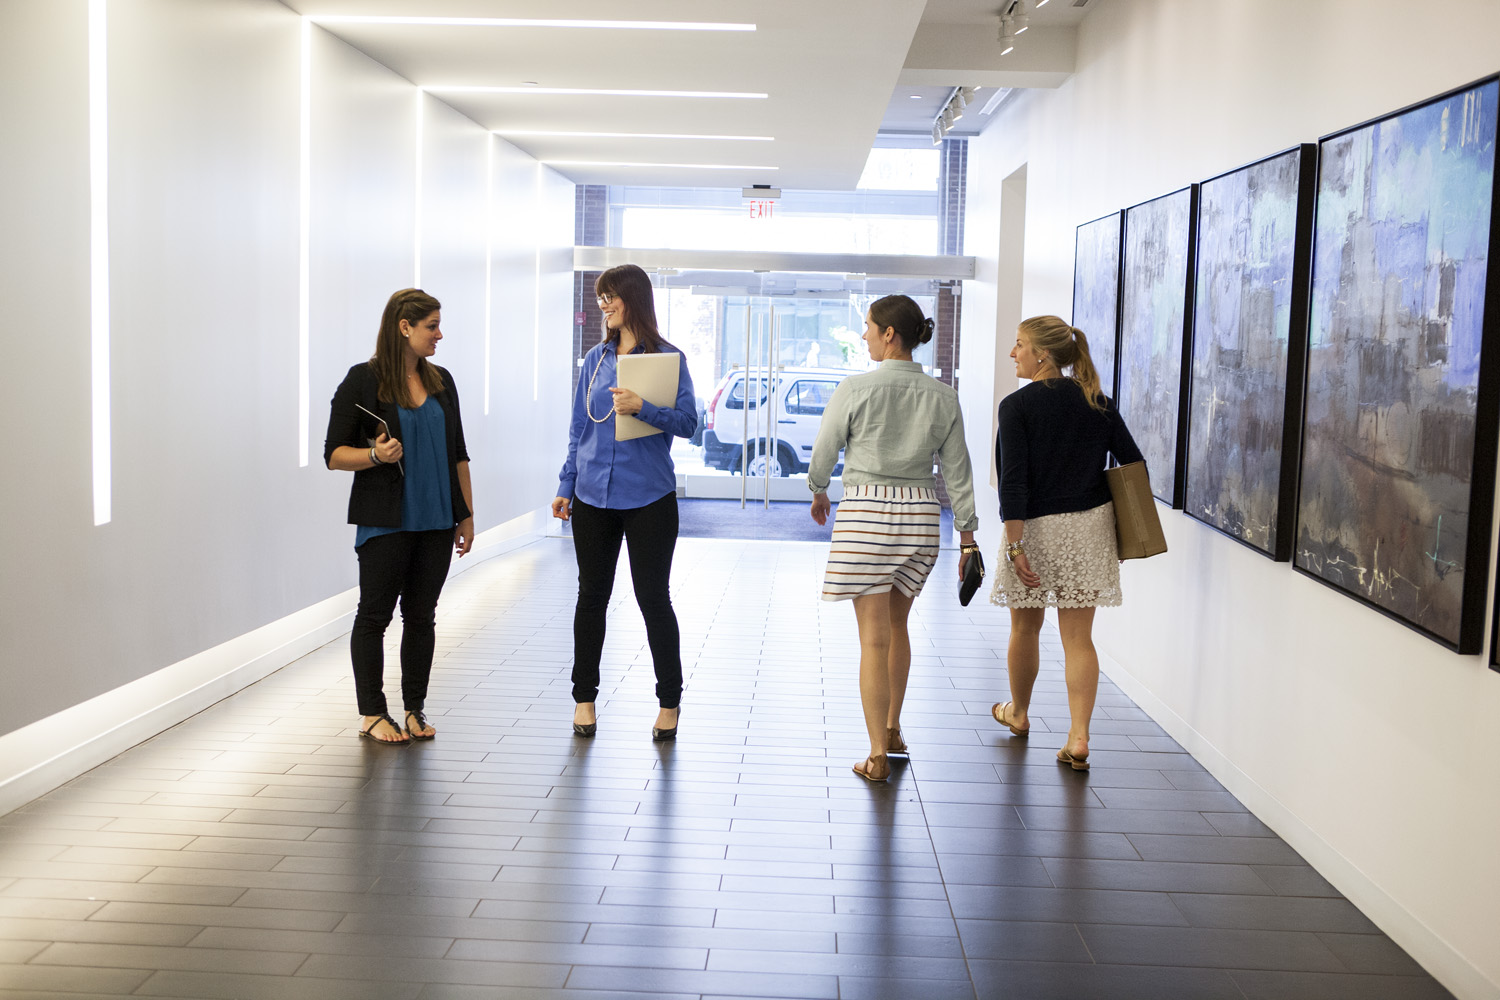 Four young women talking in a hallway